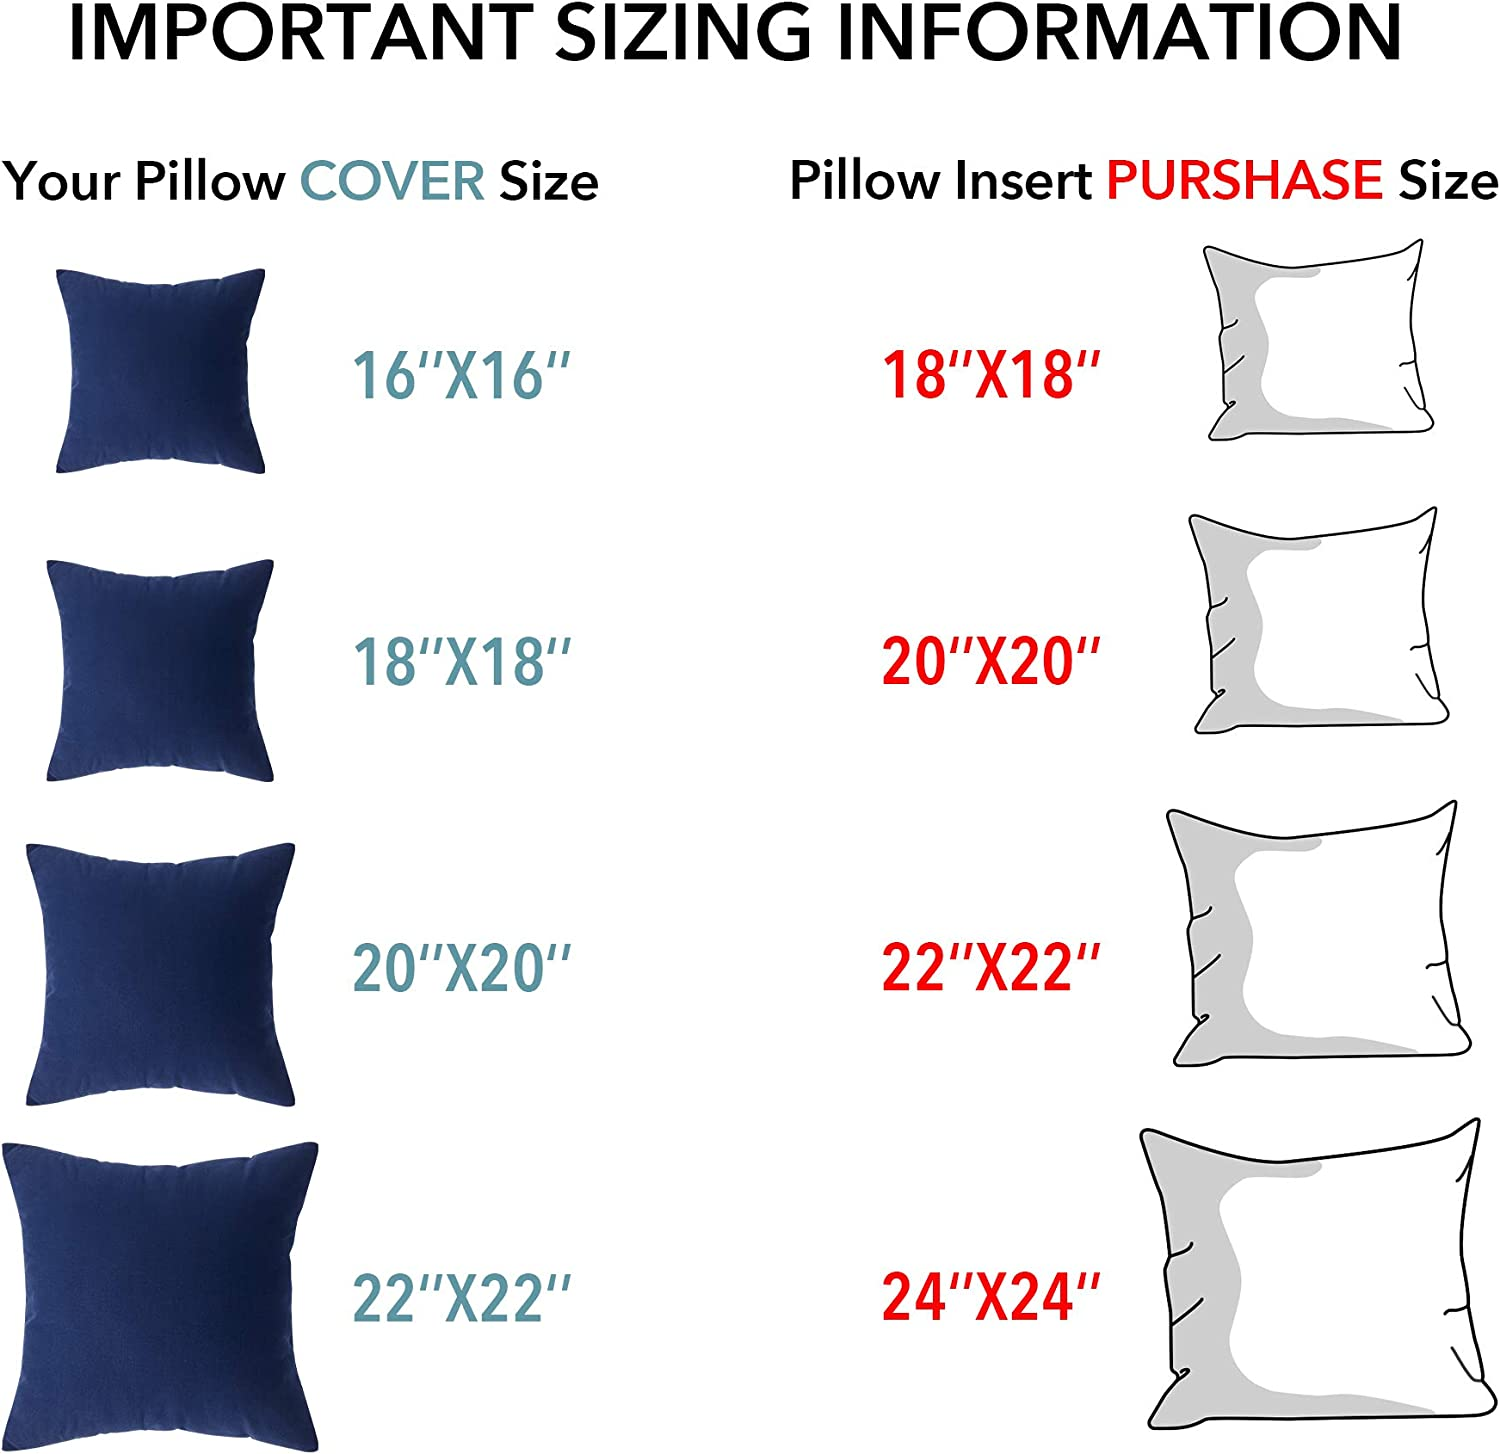 Oubonun 22 x 22 Pillow Inserts (Set of 2) - Throw Pillow Inserts with 100% Cotton Cover - 22 Inch Square Interior Sofa Pillow Inserts - Decorative Pillow Insert Pair - White Couch Pillow: Kitchen & Dining